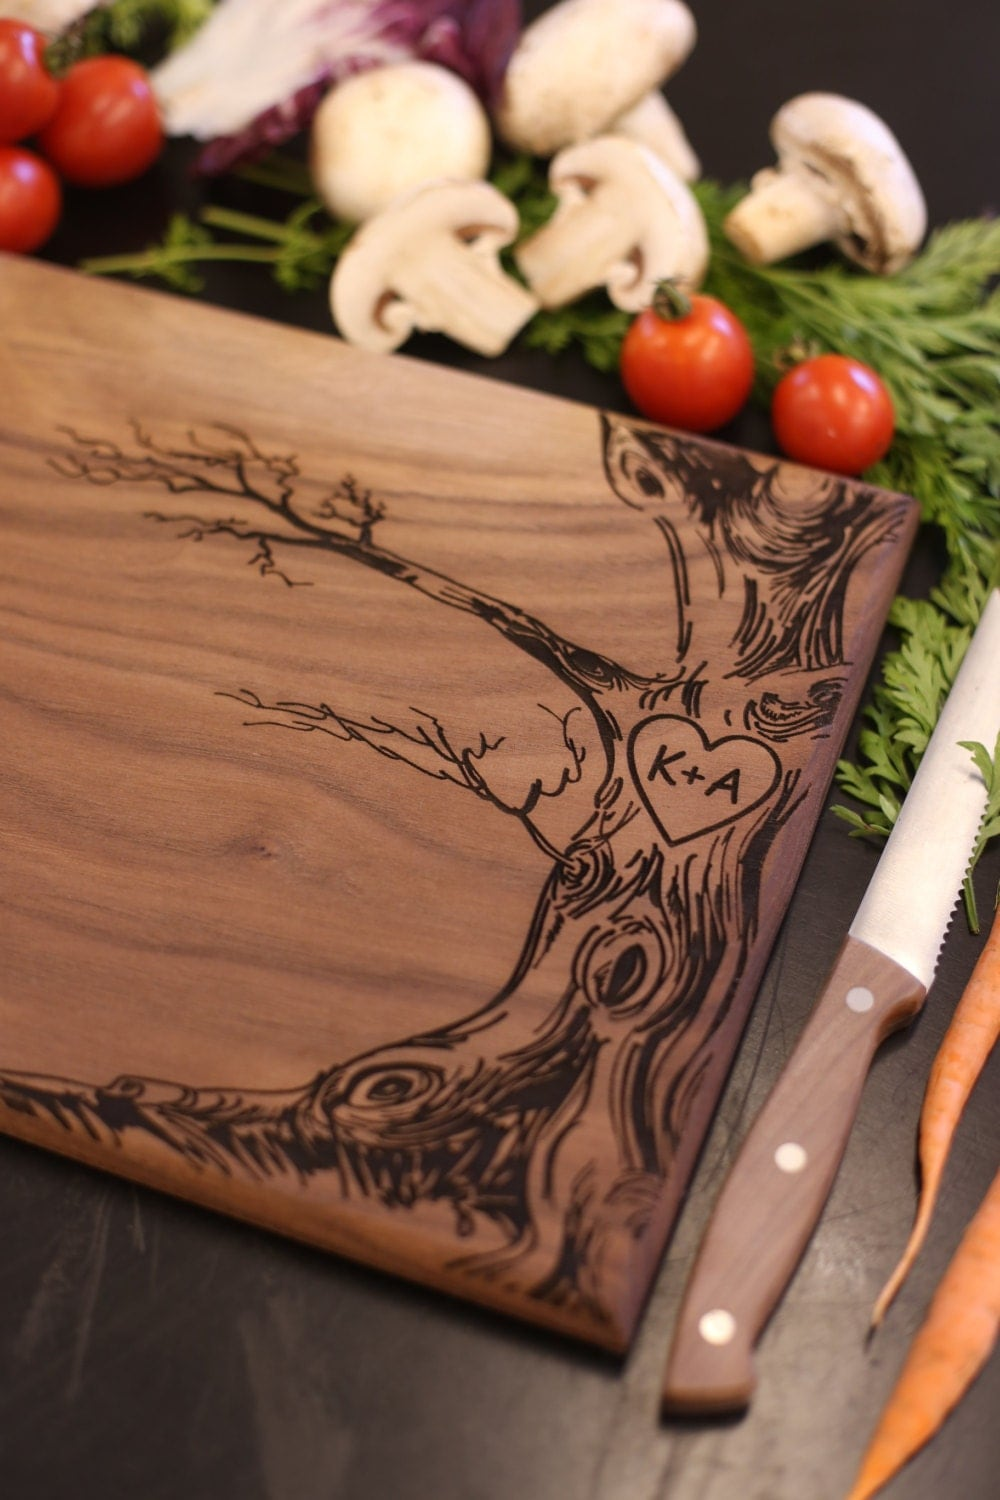 Personalized Cutting Boards ~ Personalized cutting board newlyweds christmas gift bridal